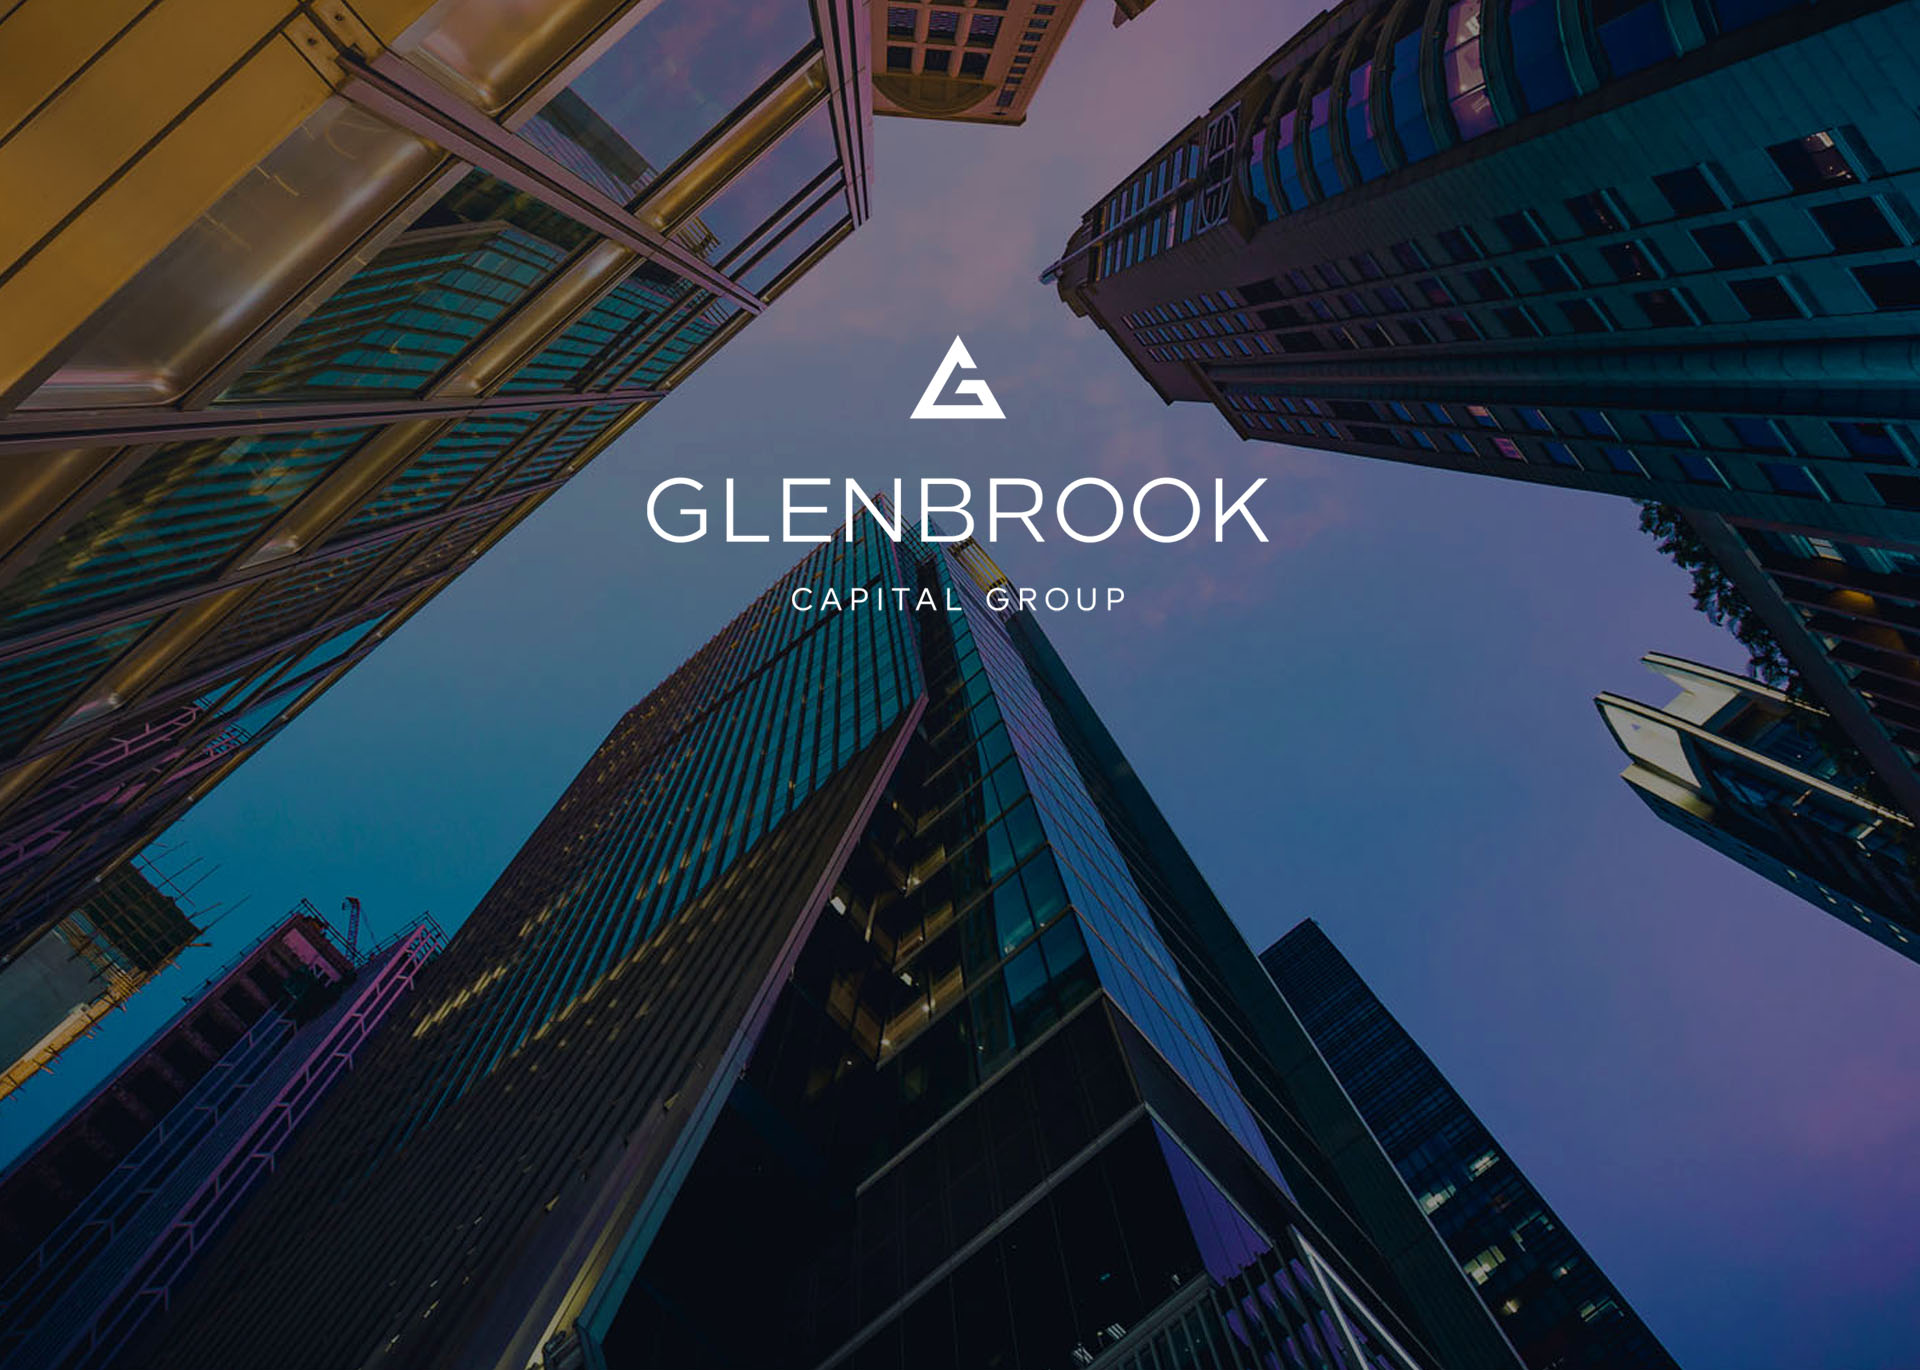 Glenbrook Capital Group